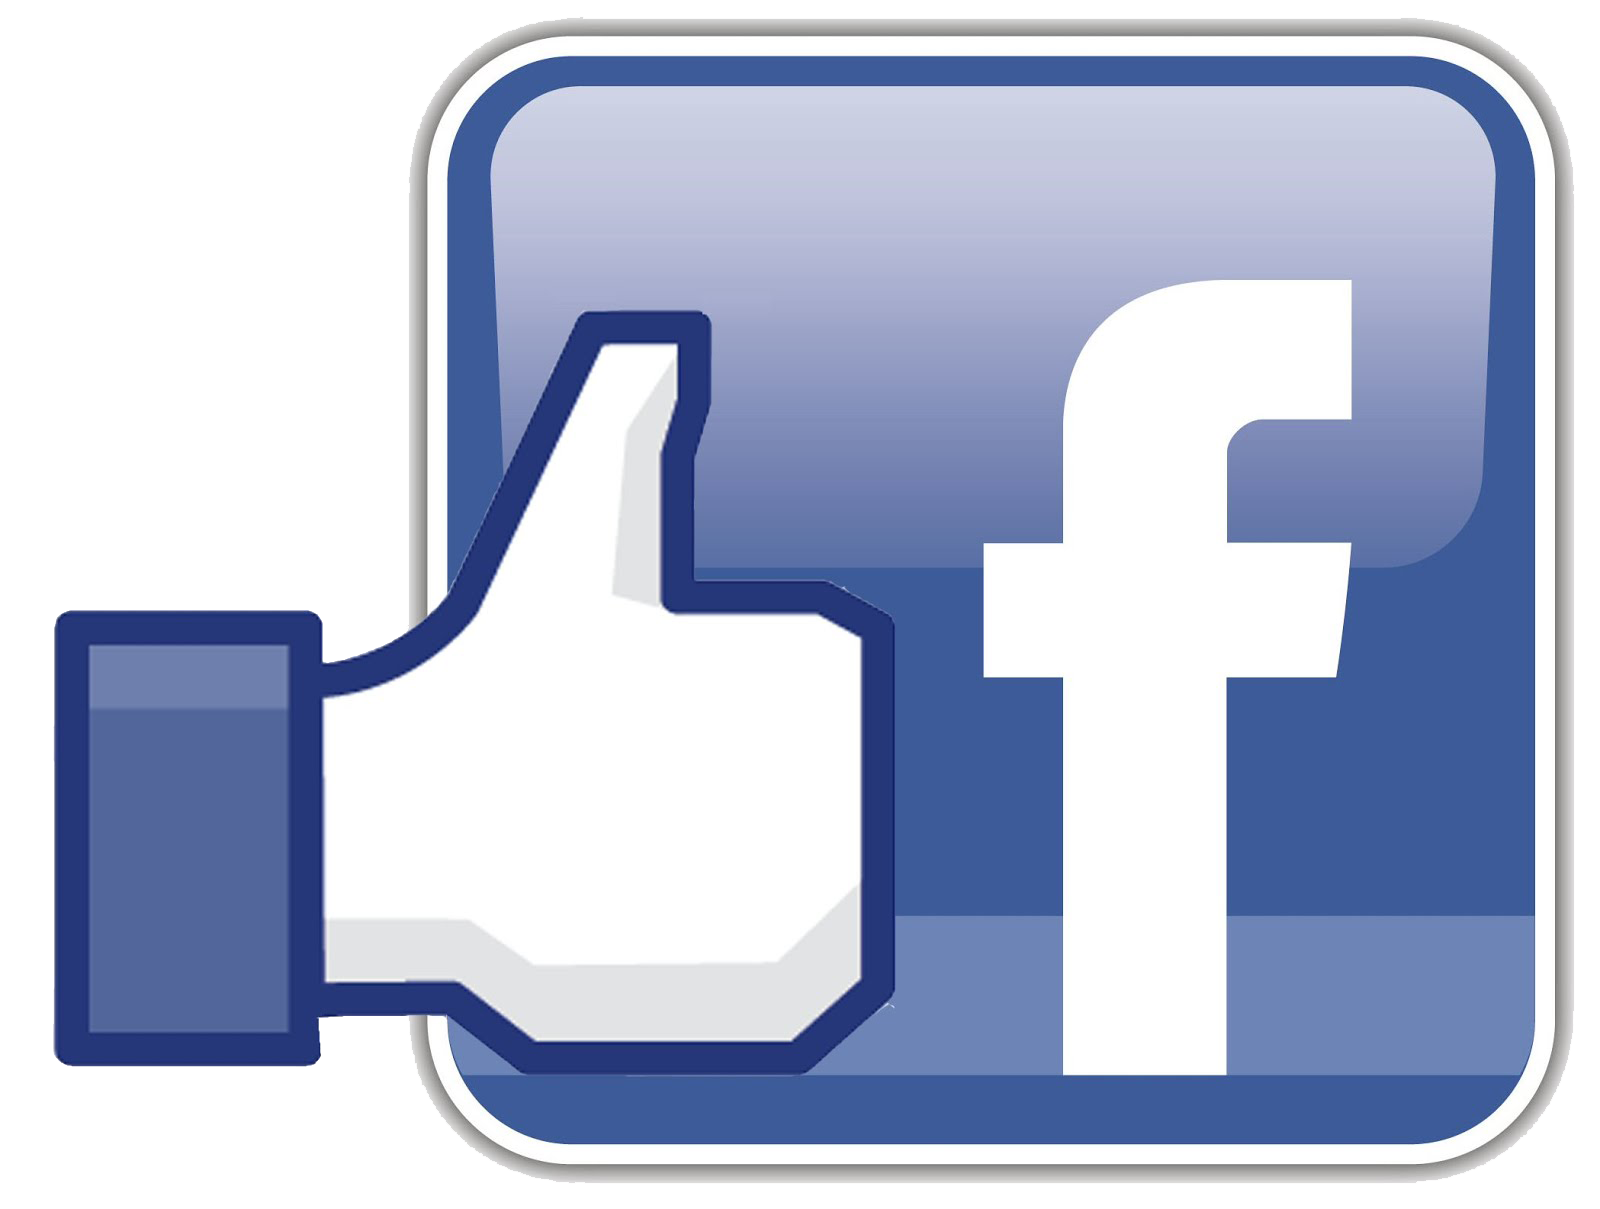 F Logo, Facebook Symbol, Logo, Icon, Like, OK #32226